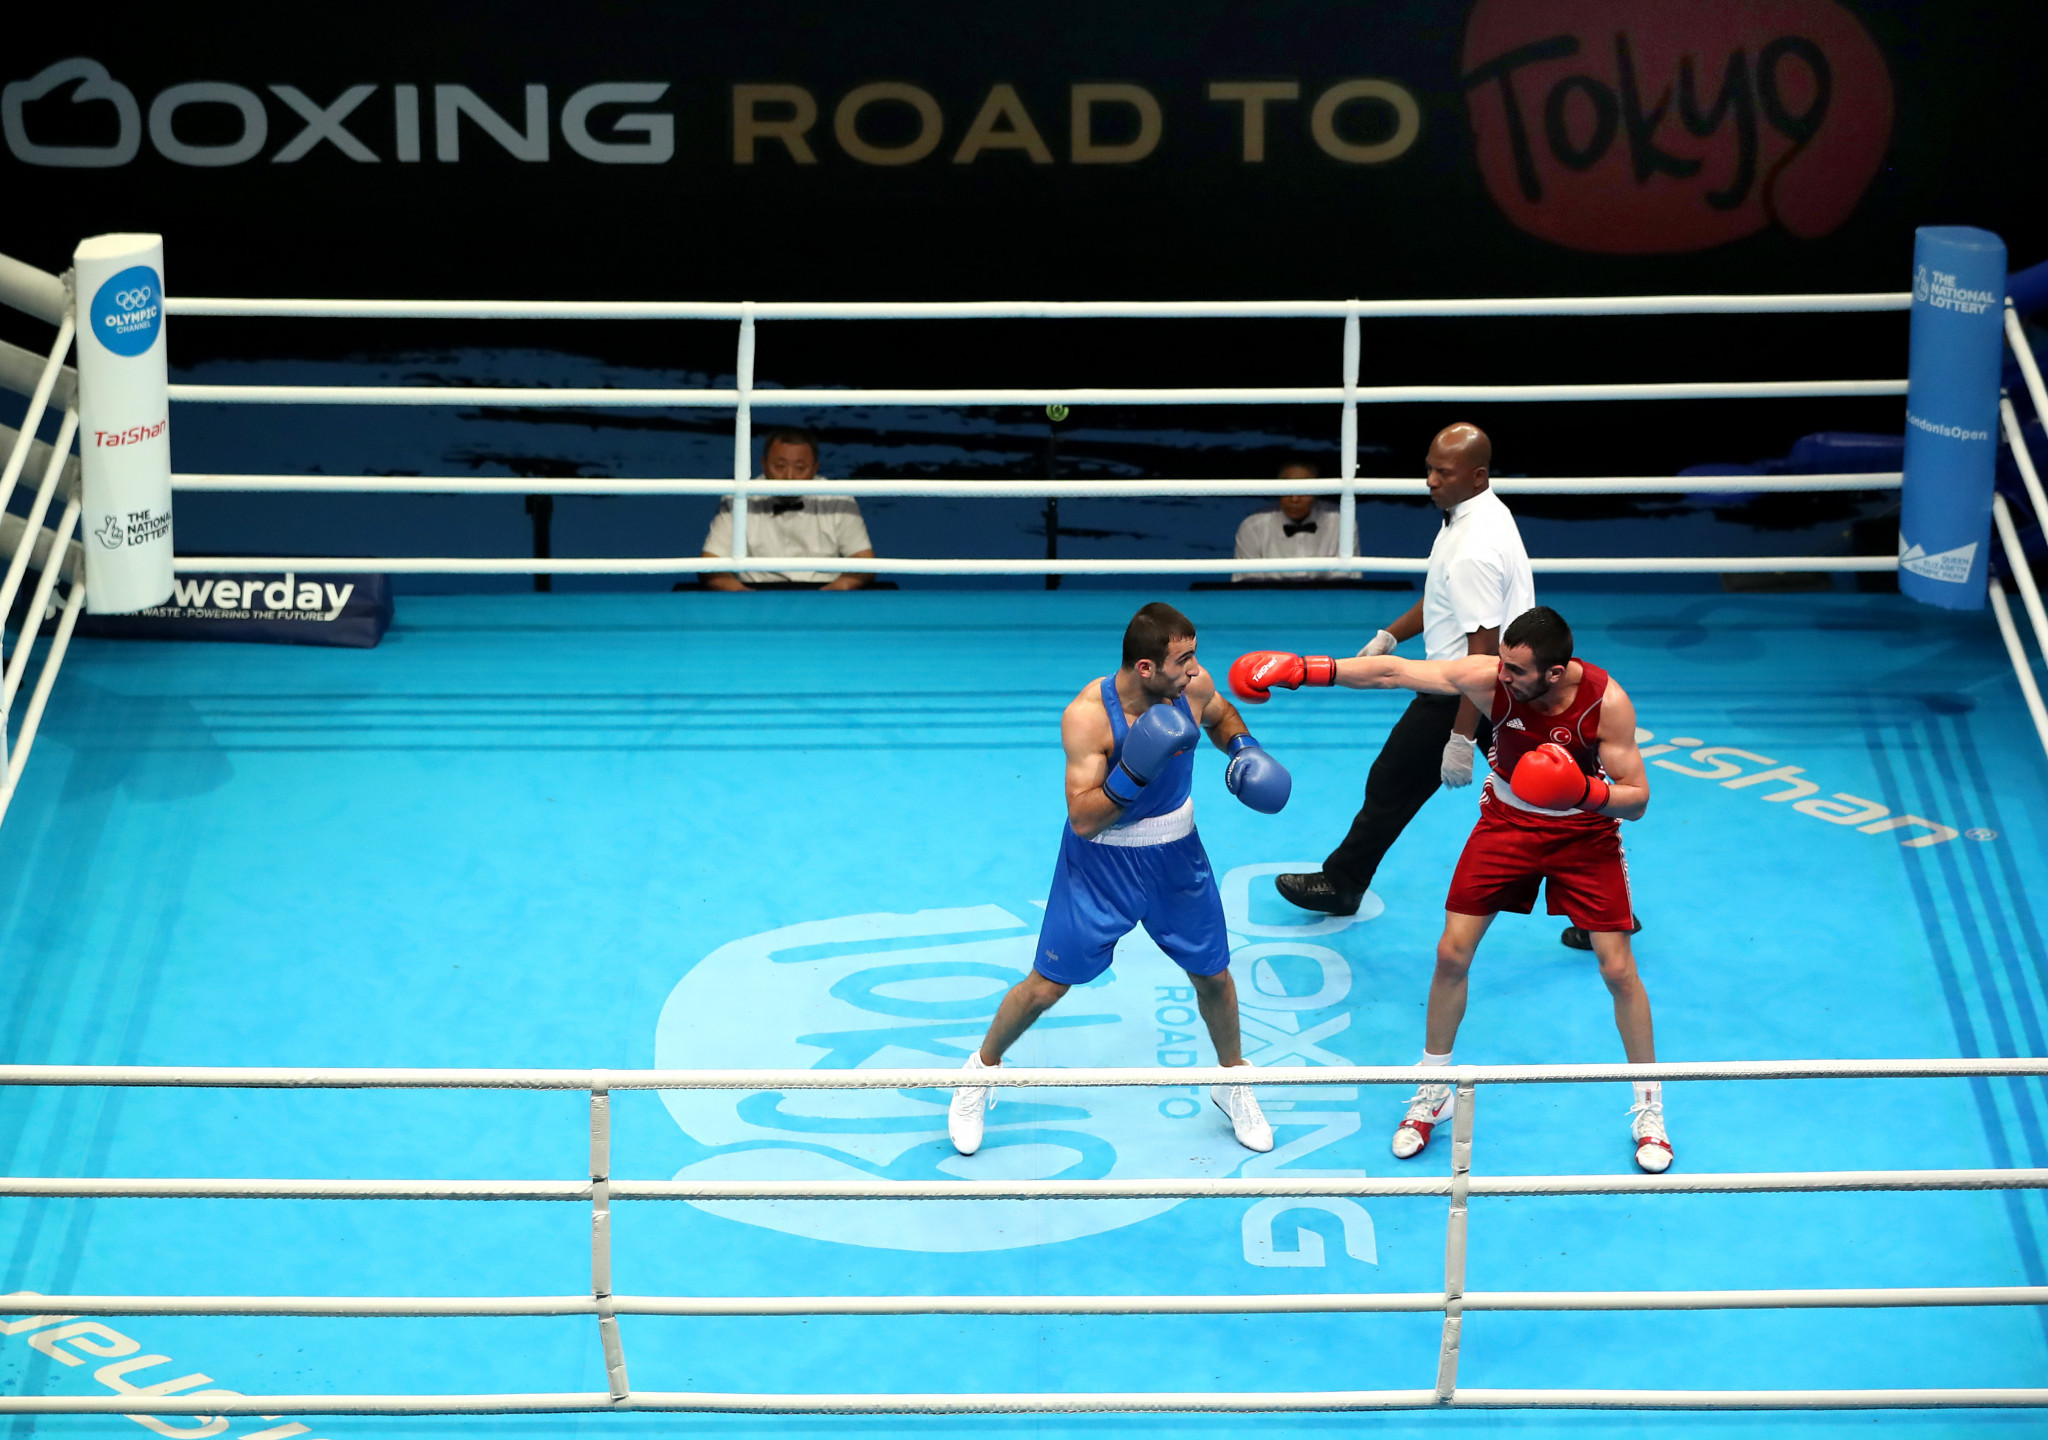 The IOC Boxing Taskforce has faced criticism for allowing the qualifier to take place ©Getty Images